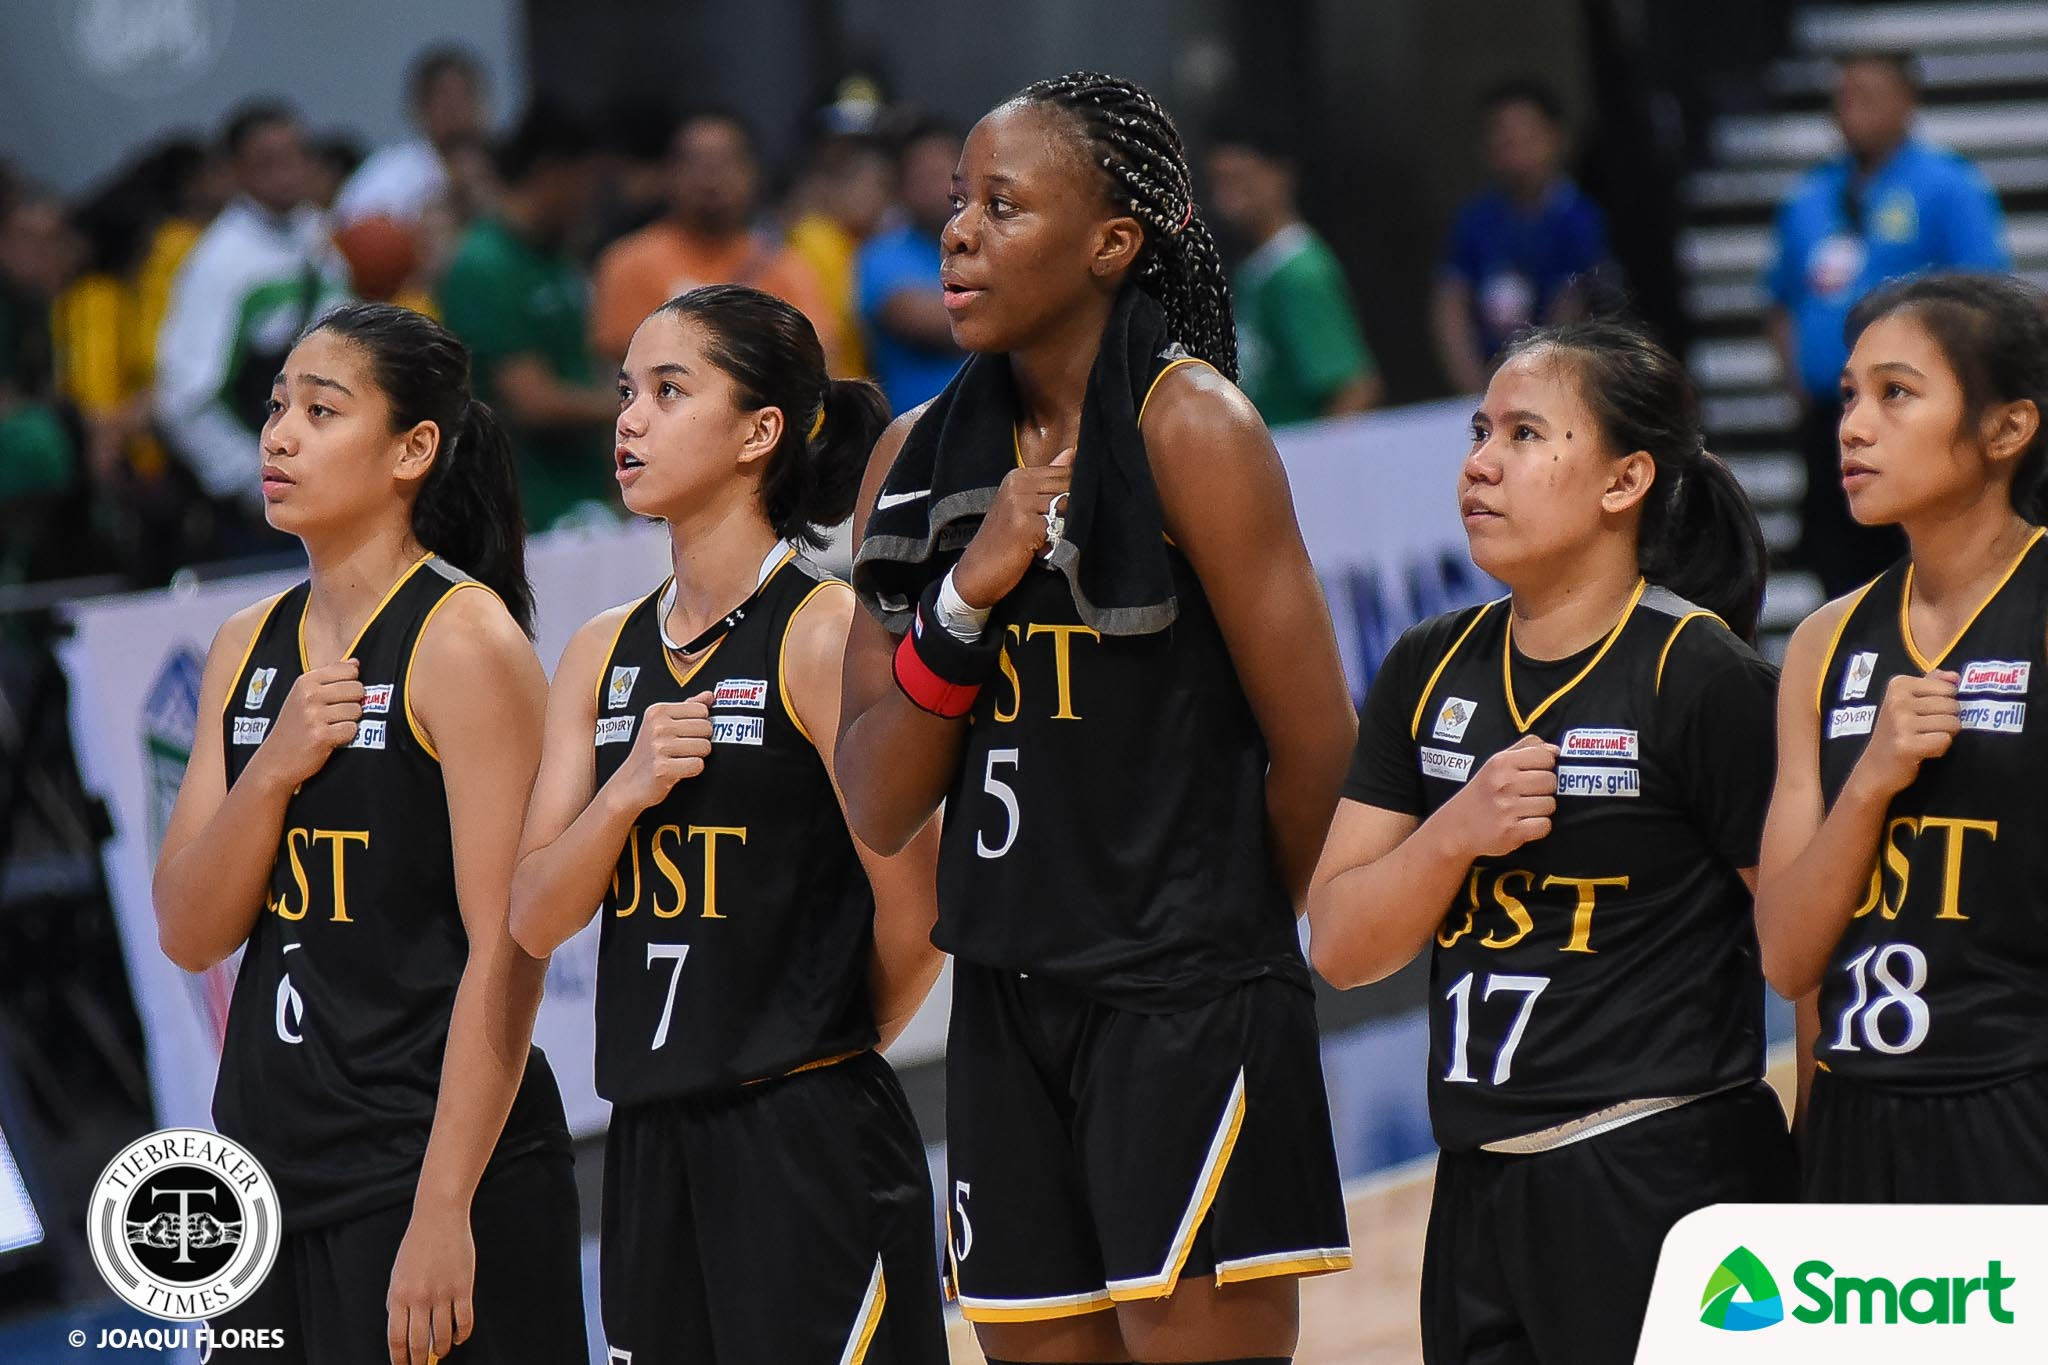 Tiebreaker Times Grace Irebu powers UST to solo second, deals La Salle 29-point rout Basketball DLSU News UAAP UST  UST Women's Basketball UAAP Season 82 Women's Basketball UAAP Season 82 Lon Rivera Kent Pastrana Haydee Ong Grace Irebu DLSU Women's Basketball Cholo Villanueva Bennette Revillosa